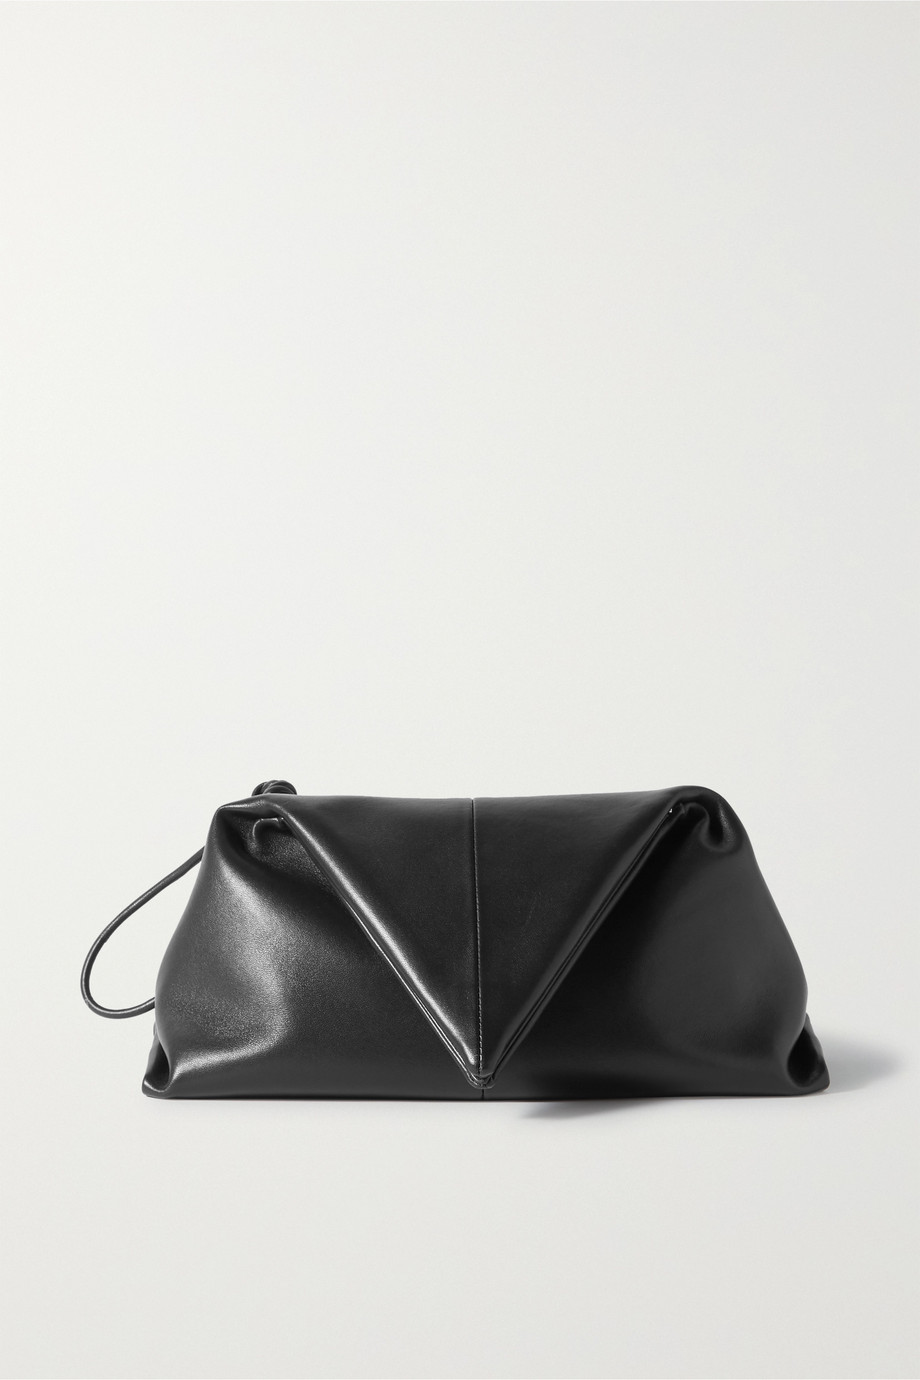 Bottega Veneta BV Trine leather clutch